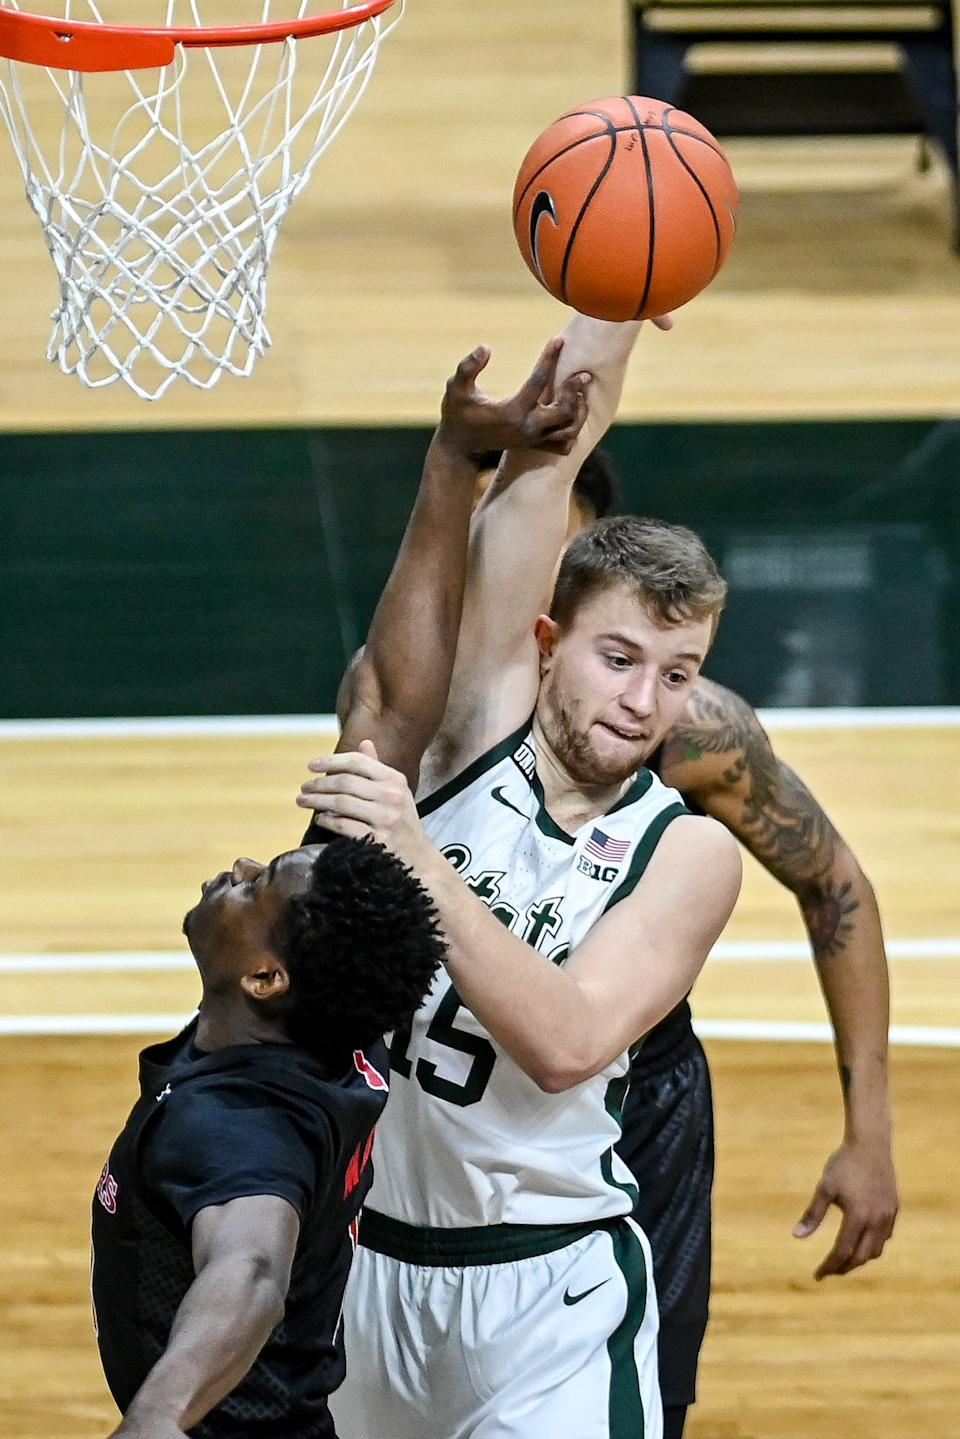 Michigan State's Thomas Kithier, right, goes for a rebound along with Rutgers' Montez Mathis during the first half on Tuesday, Jan. 5, 2021, at the Breslin Center in East Lansing.